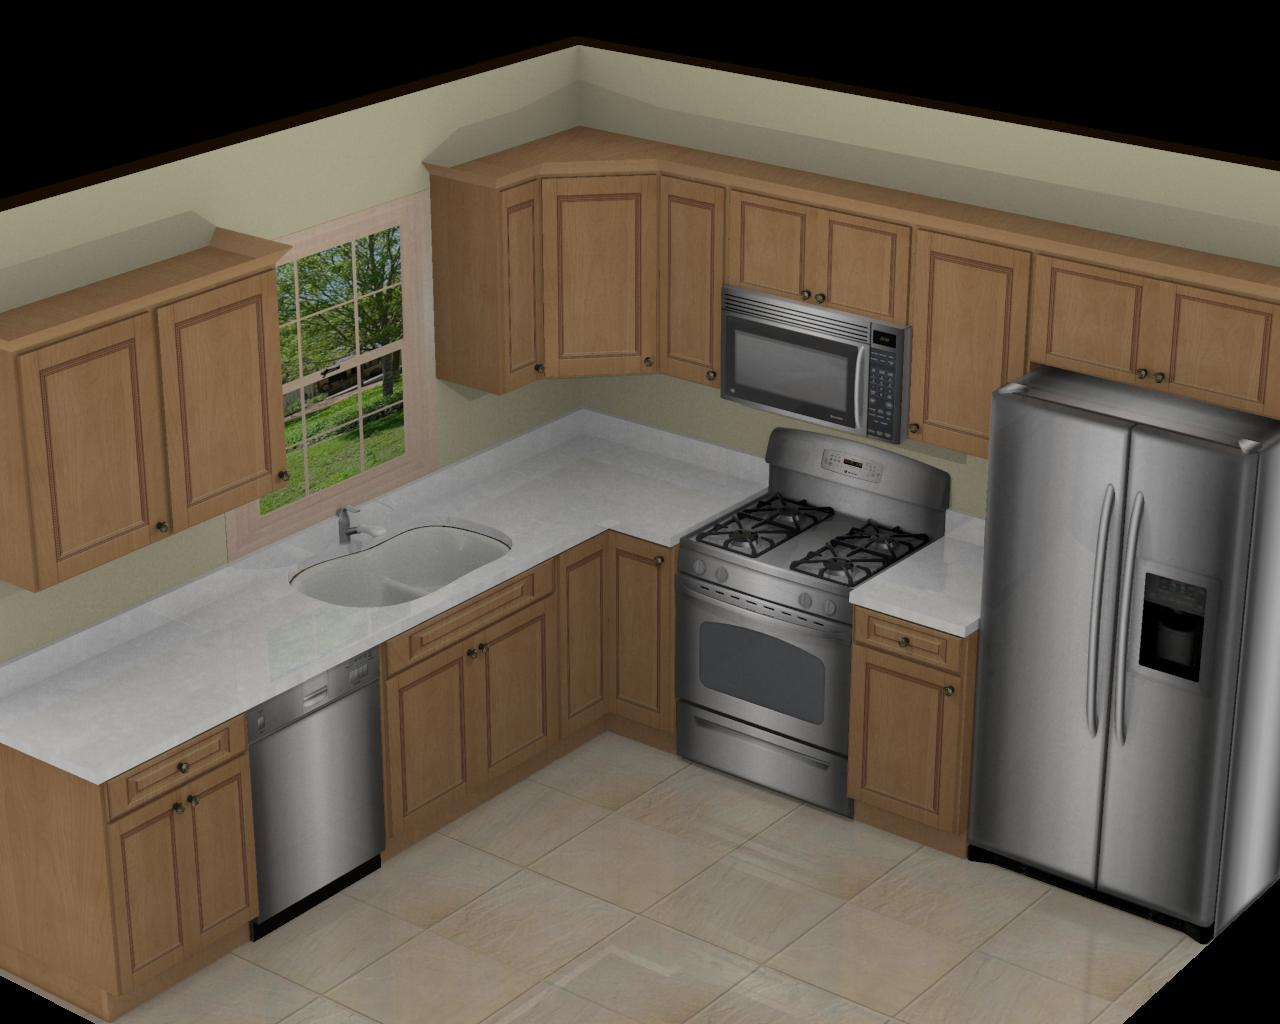 Foundation dezin decor 3d kitchen model design for Kichan dizain